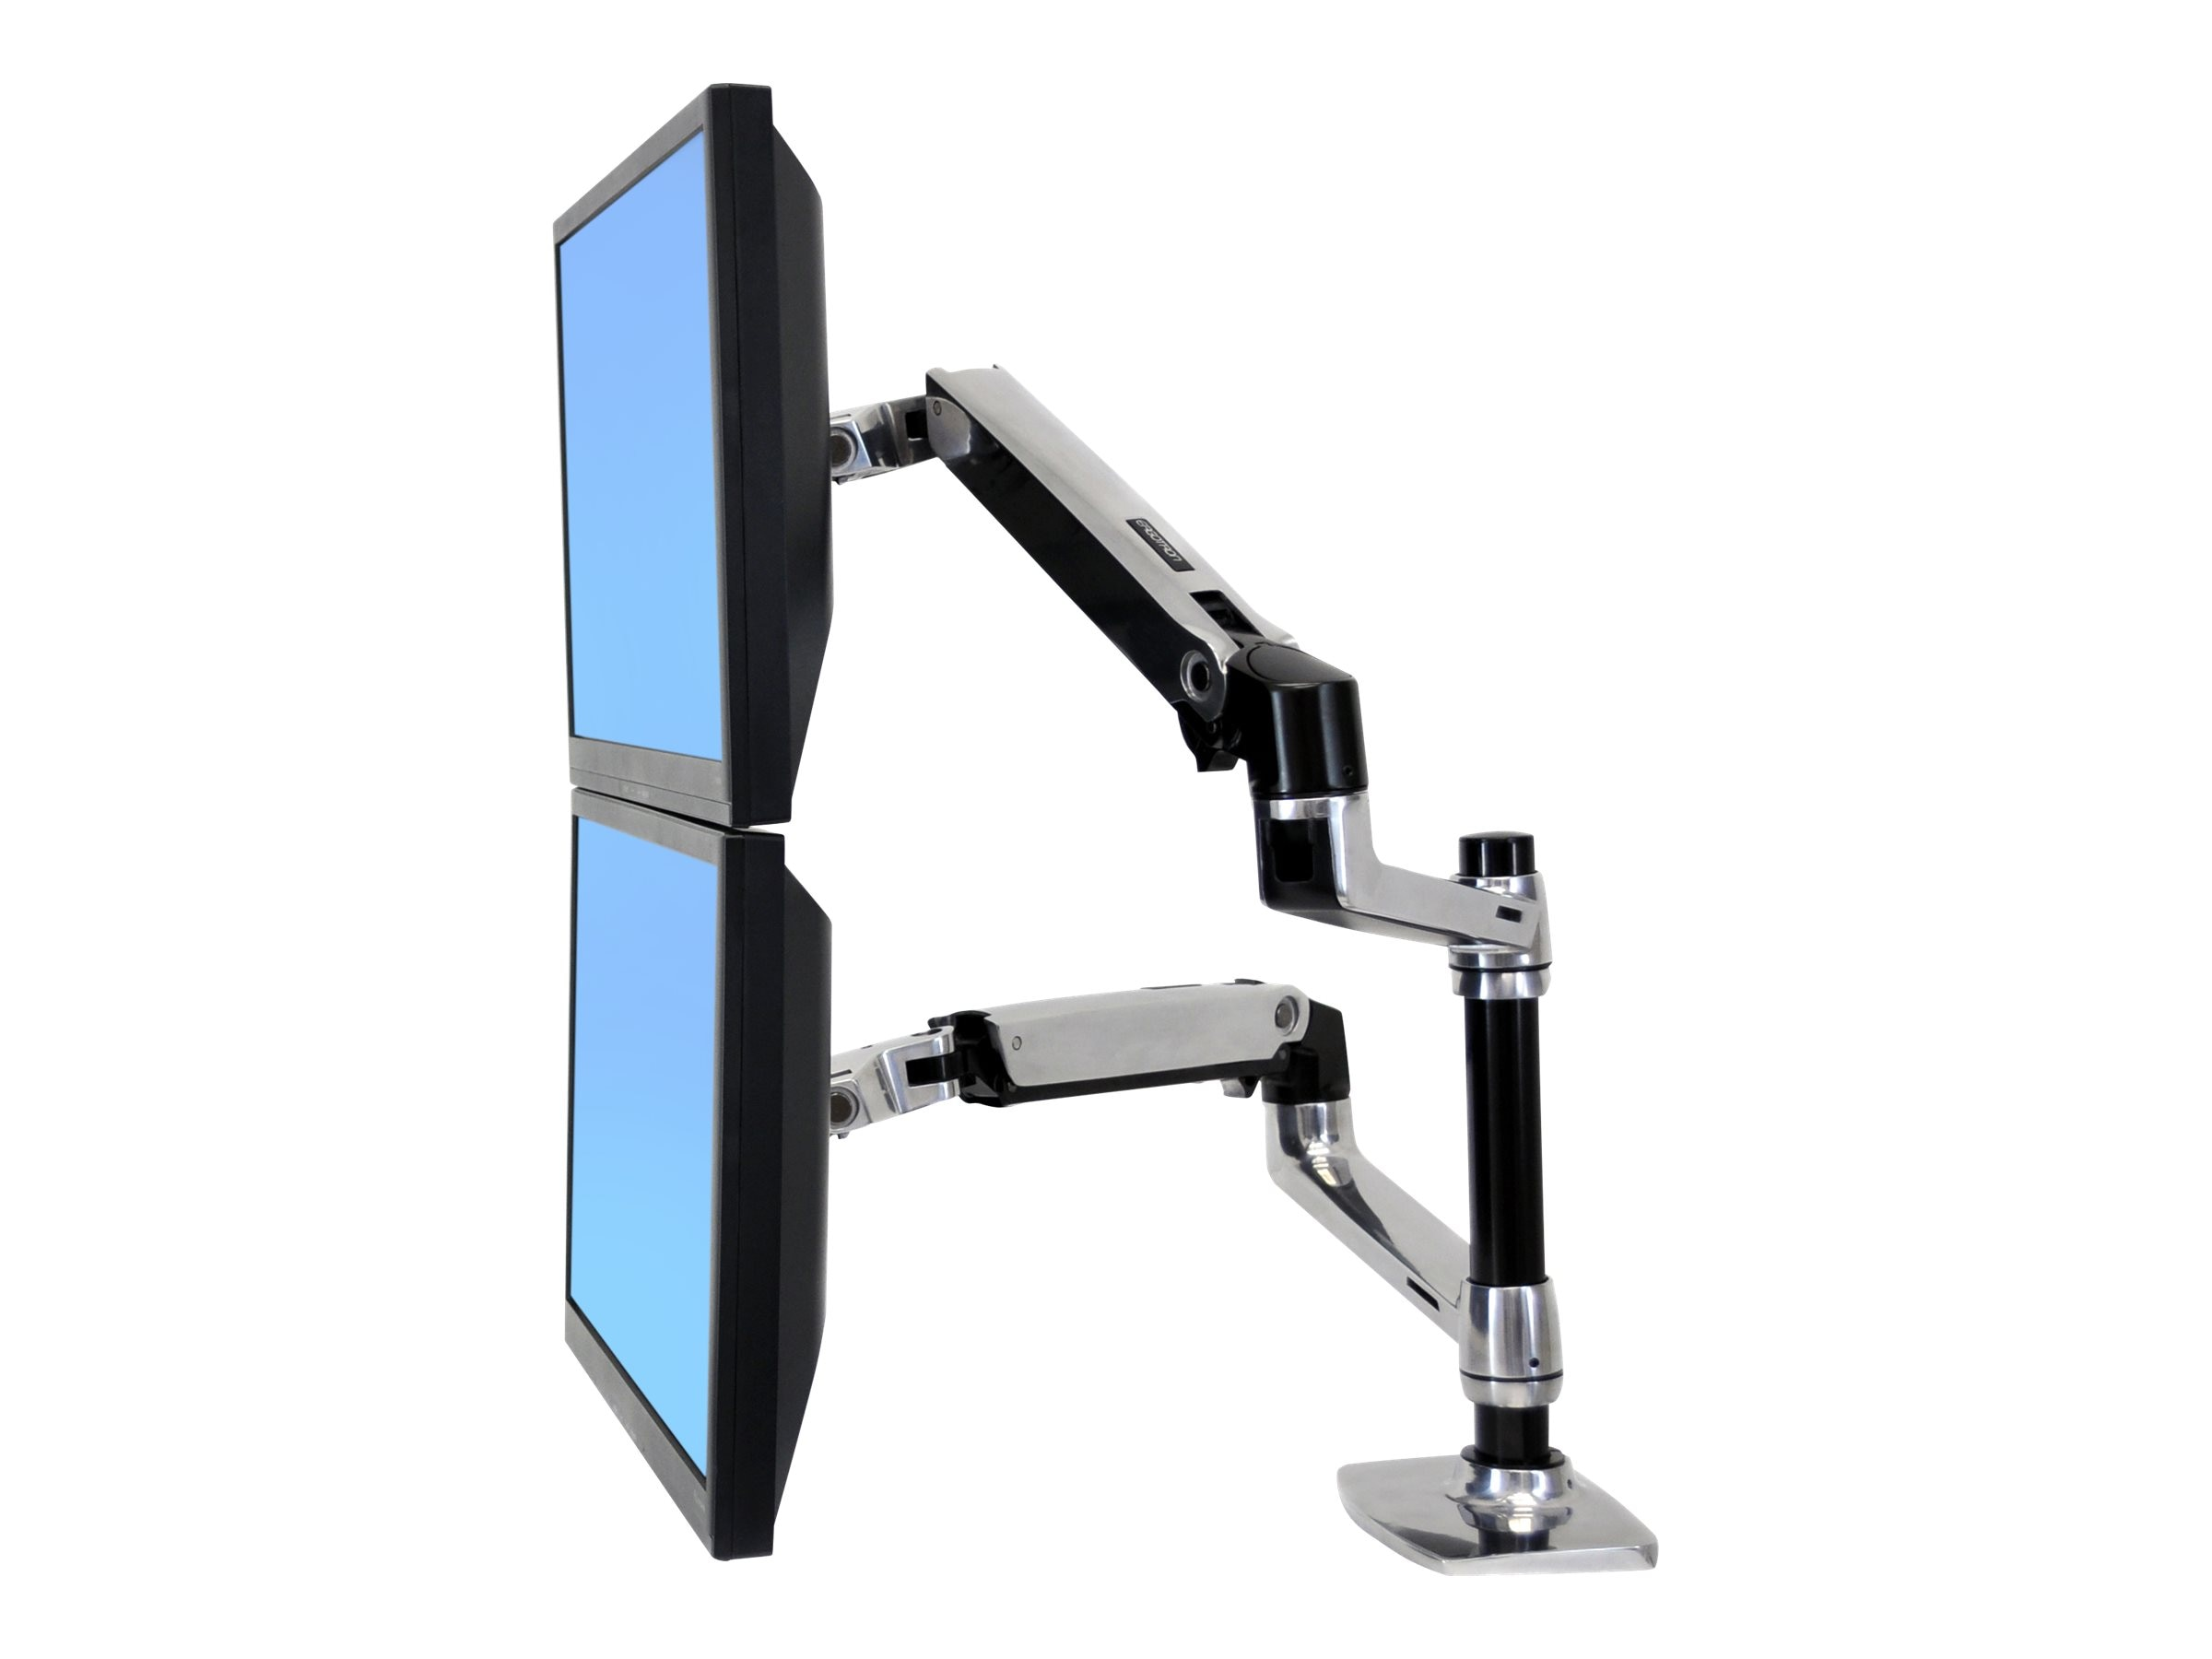 Ergotron LX Dual Stacking Arm Mount